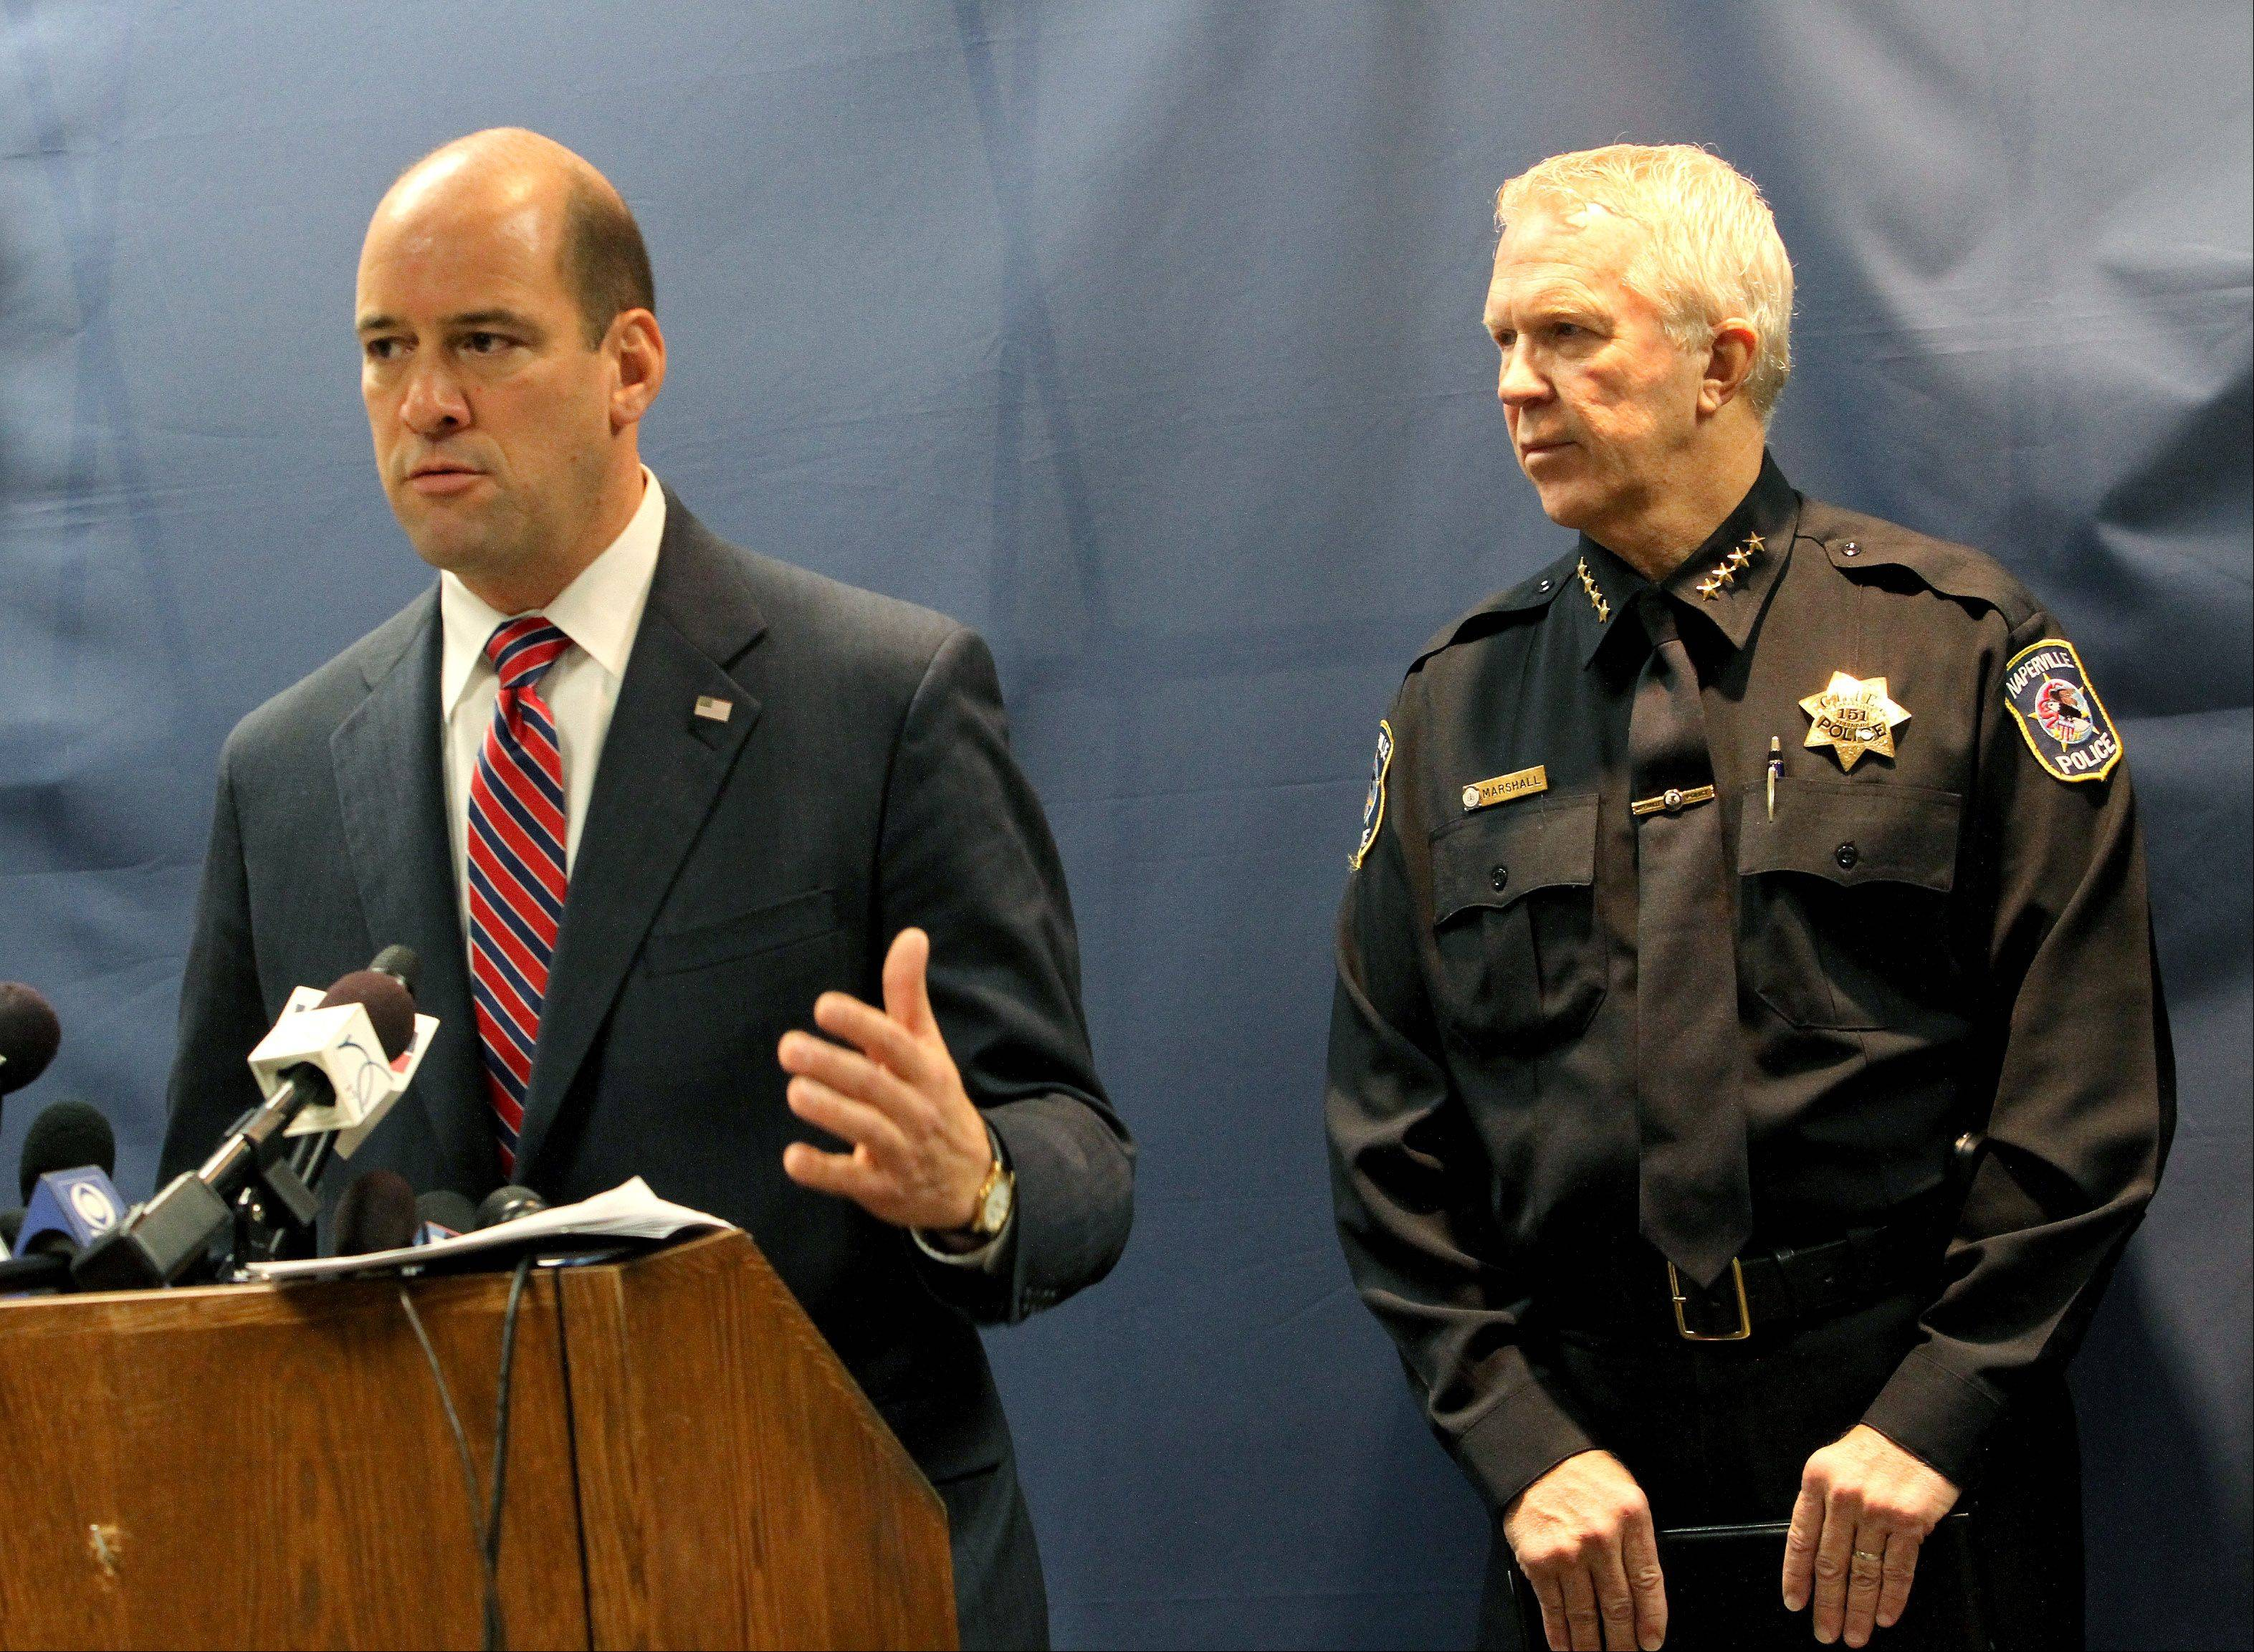 DuPage State's Attorney Robert Berlin and Naperville Police Chief Robert Marshall discuss the case Thursday following a bond hearing for Elzbieta Plackowska, accused of murdering two children.